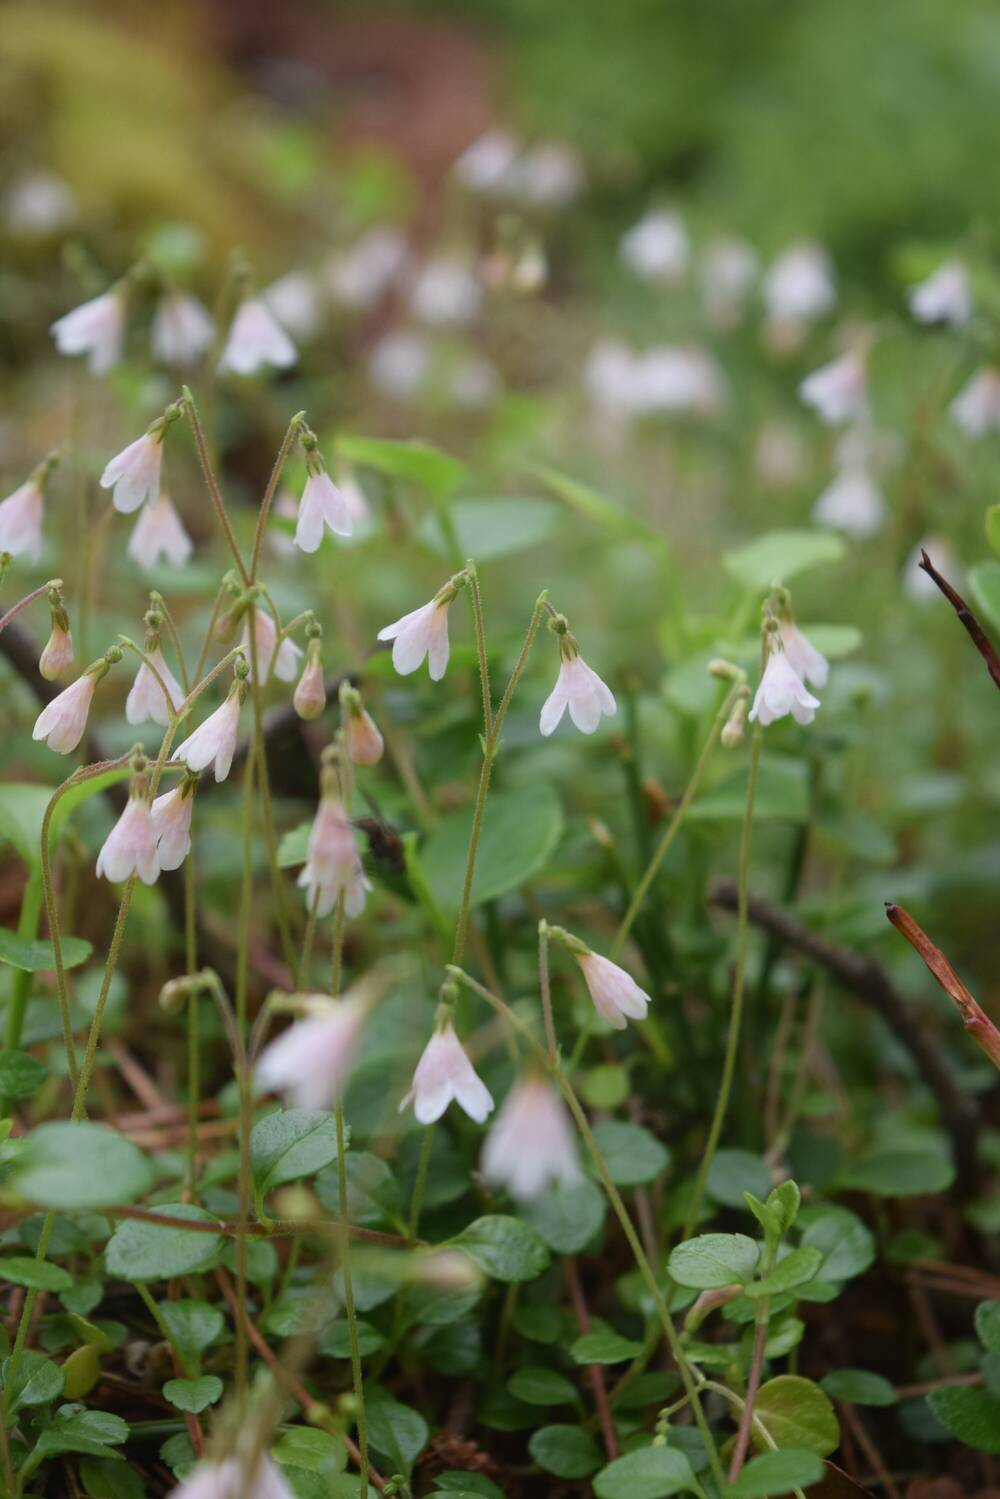 A patch of small white flowering plants, with nodding heads.